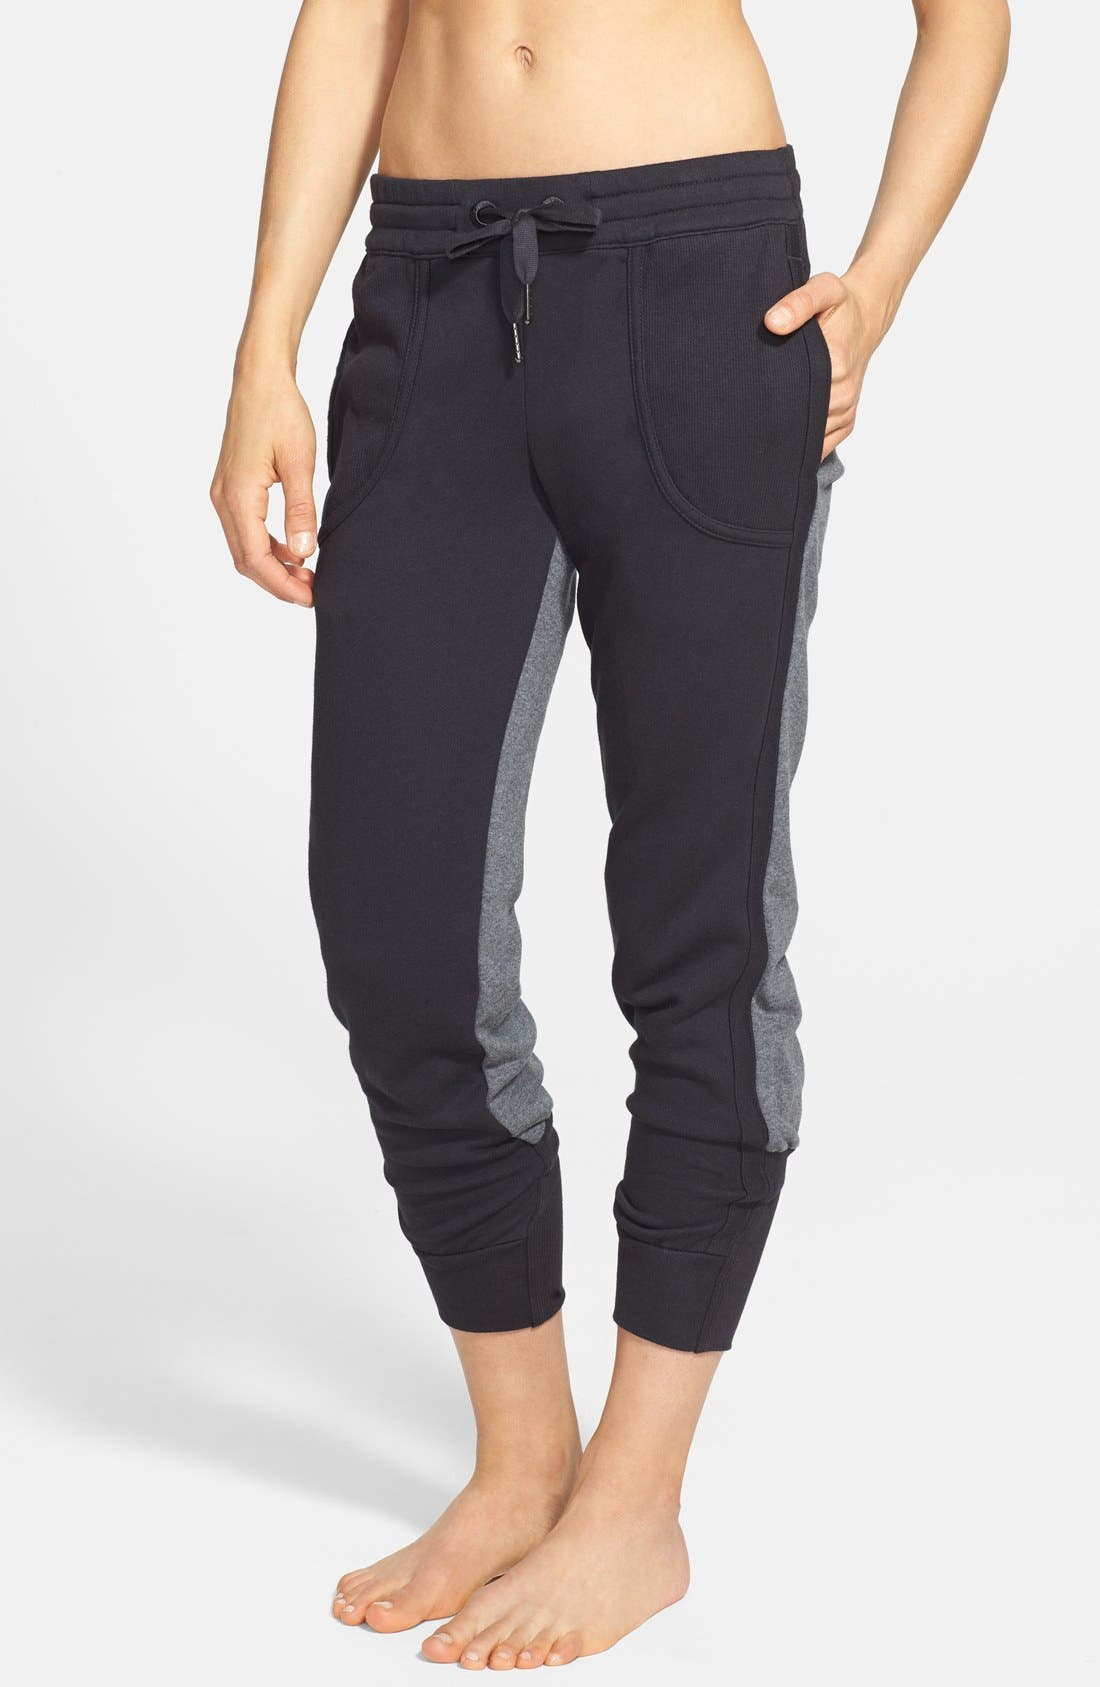 Main Image - adidas by Stella McCartney 'Essentials' Colorblock Sweatpants